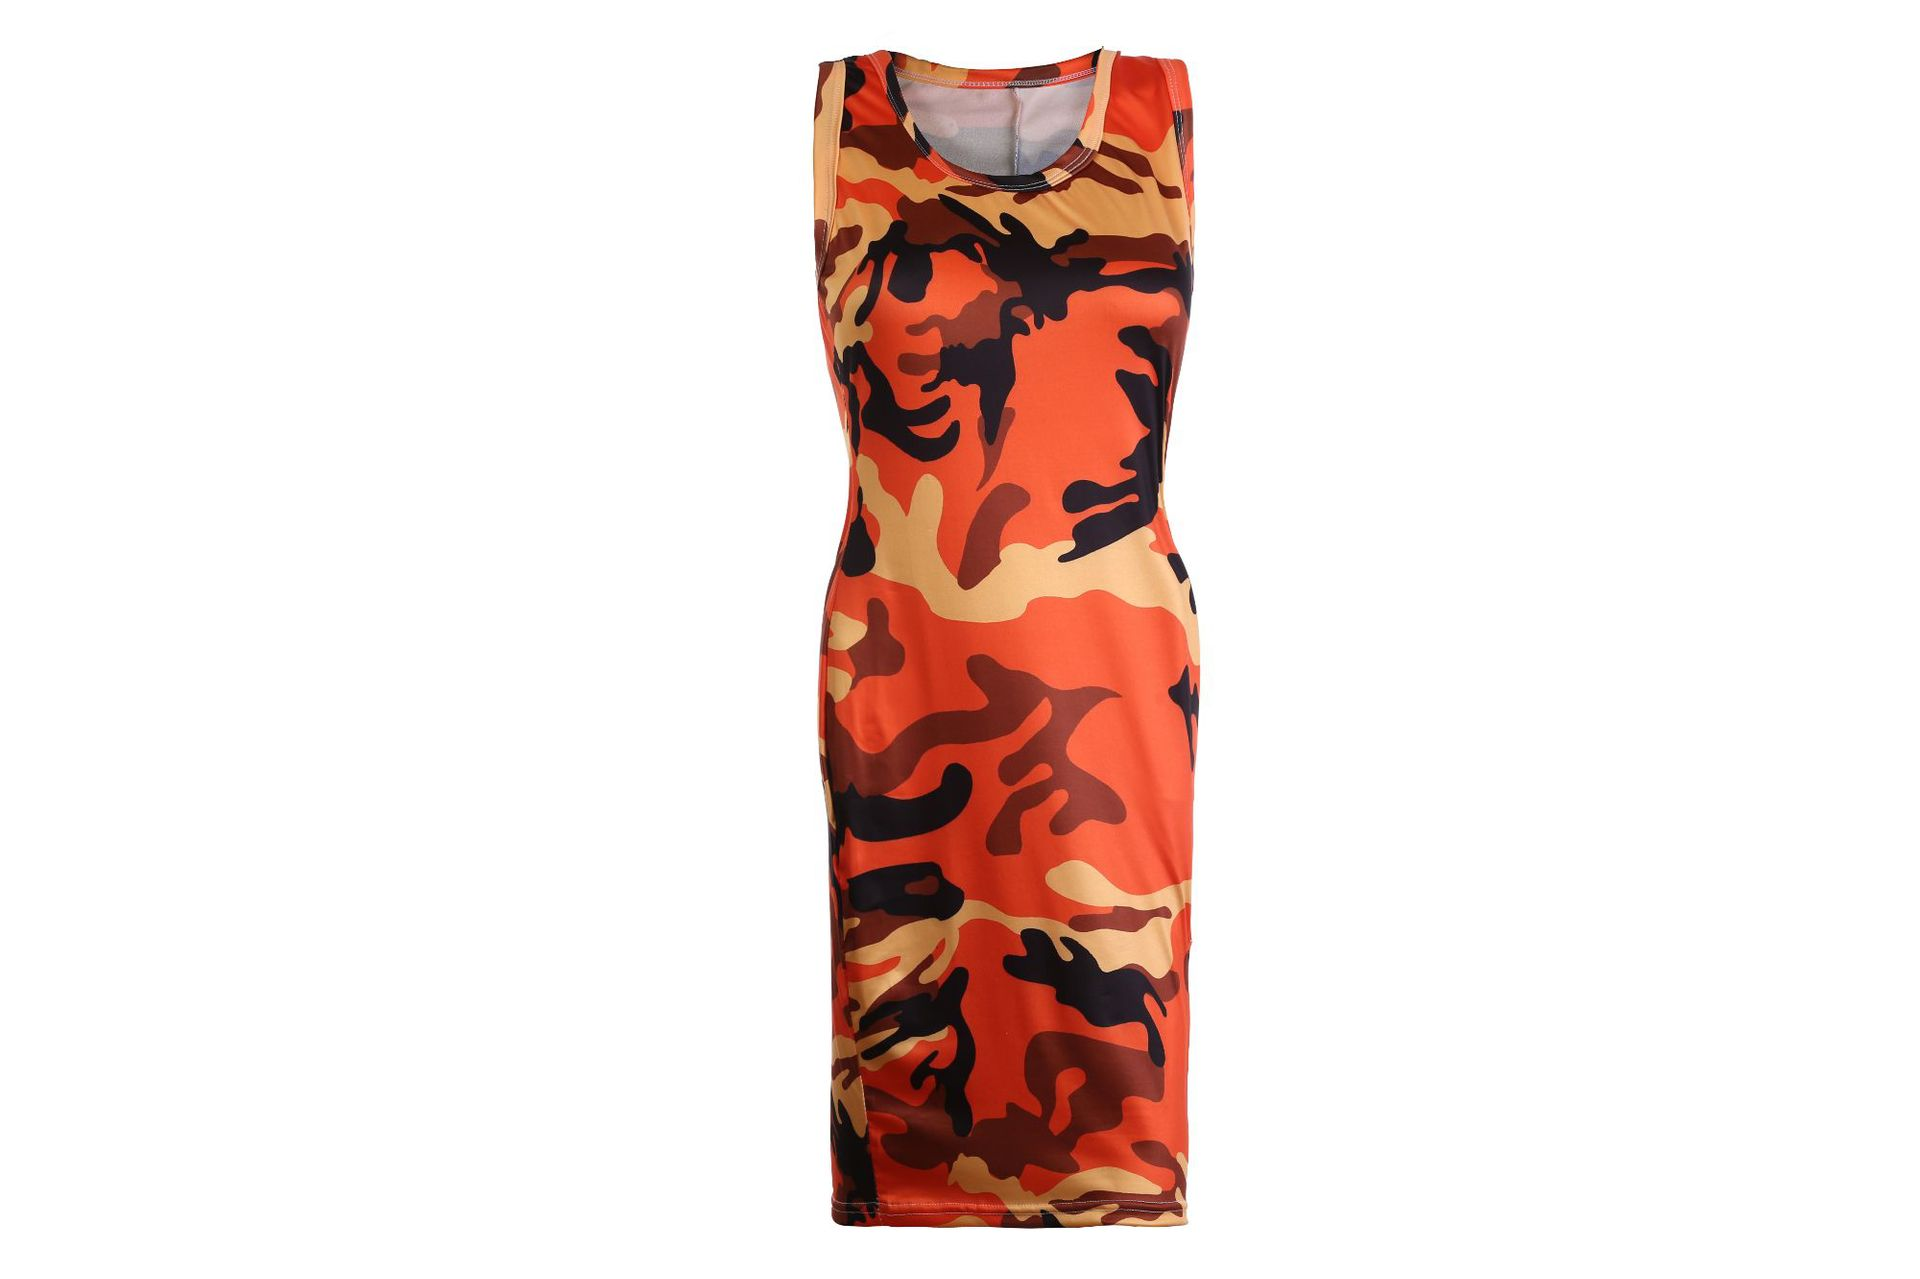 dress women plus size women vintage casual mama clothes fashion 2019 summer dresses sexy print sleeveless o neck club in Dresses from Women 39 s Clothing